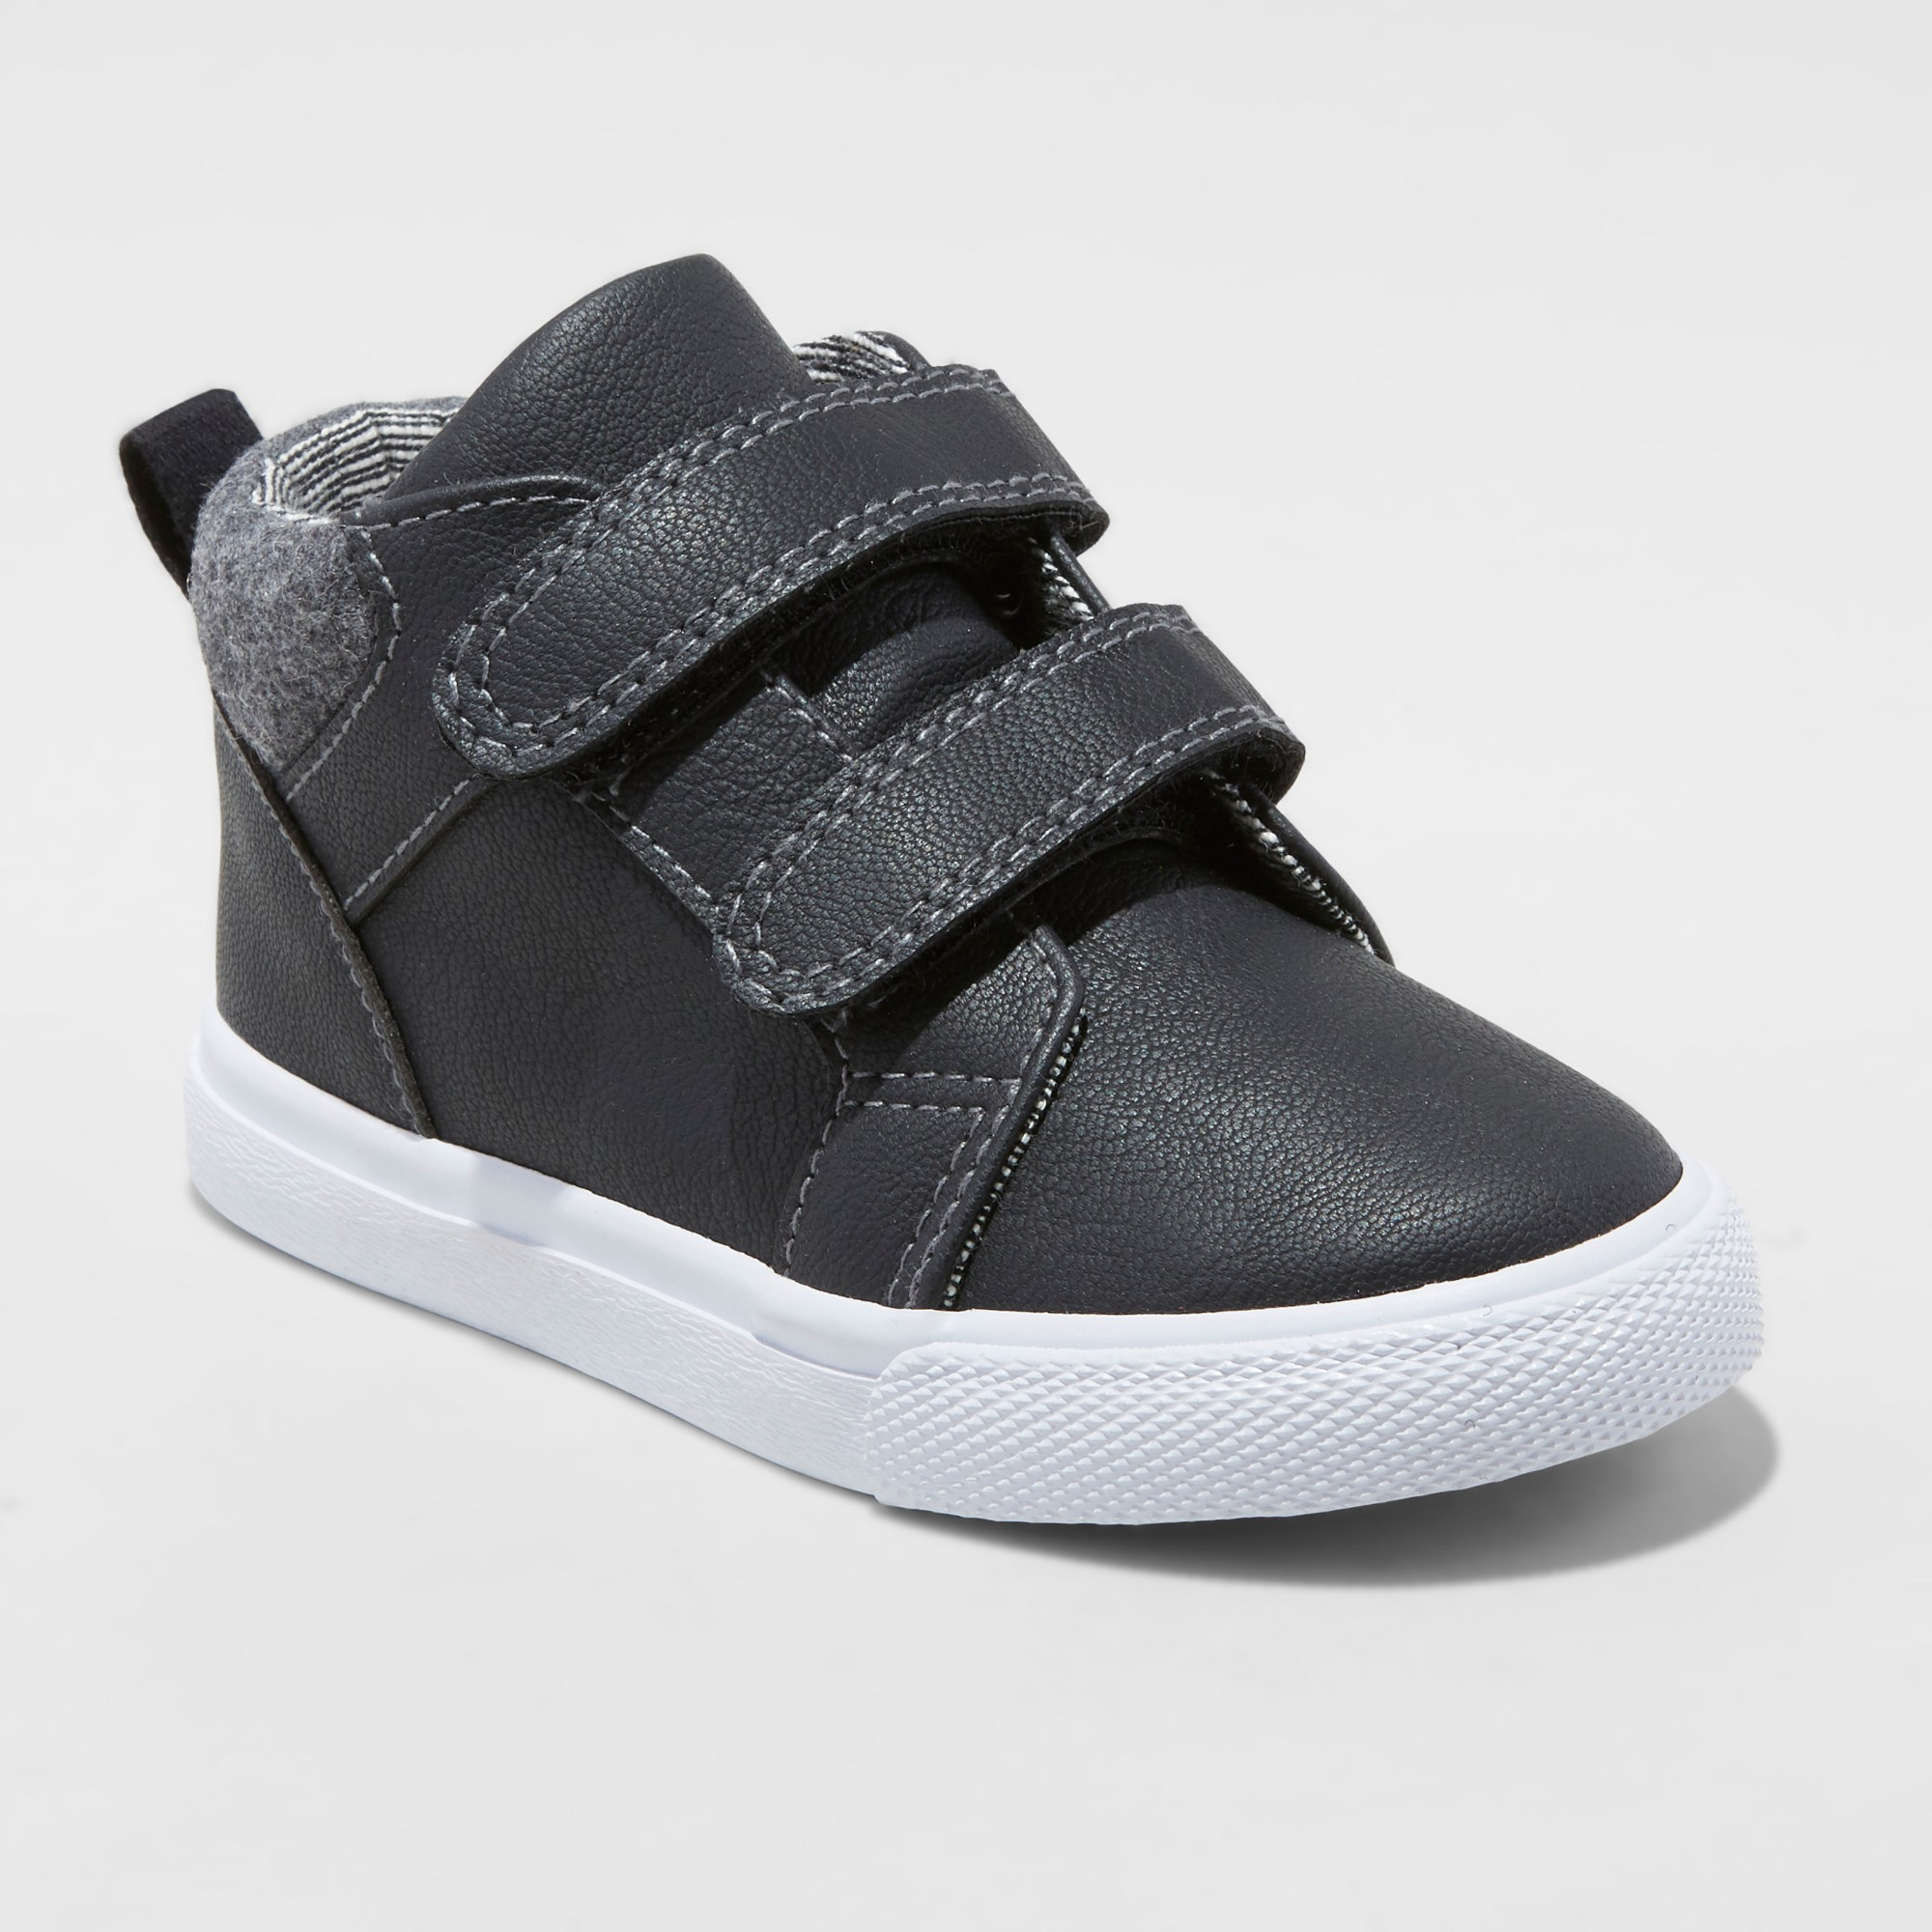 Toddler Boys' Harrison Casual Sneakers Cat & Jack Black 12